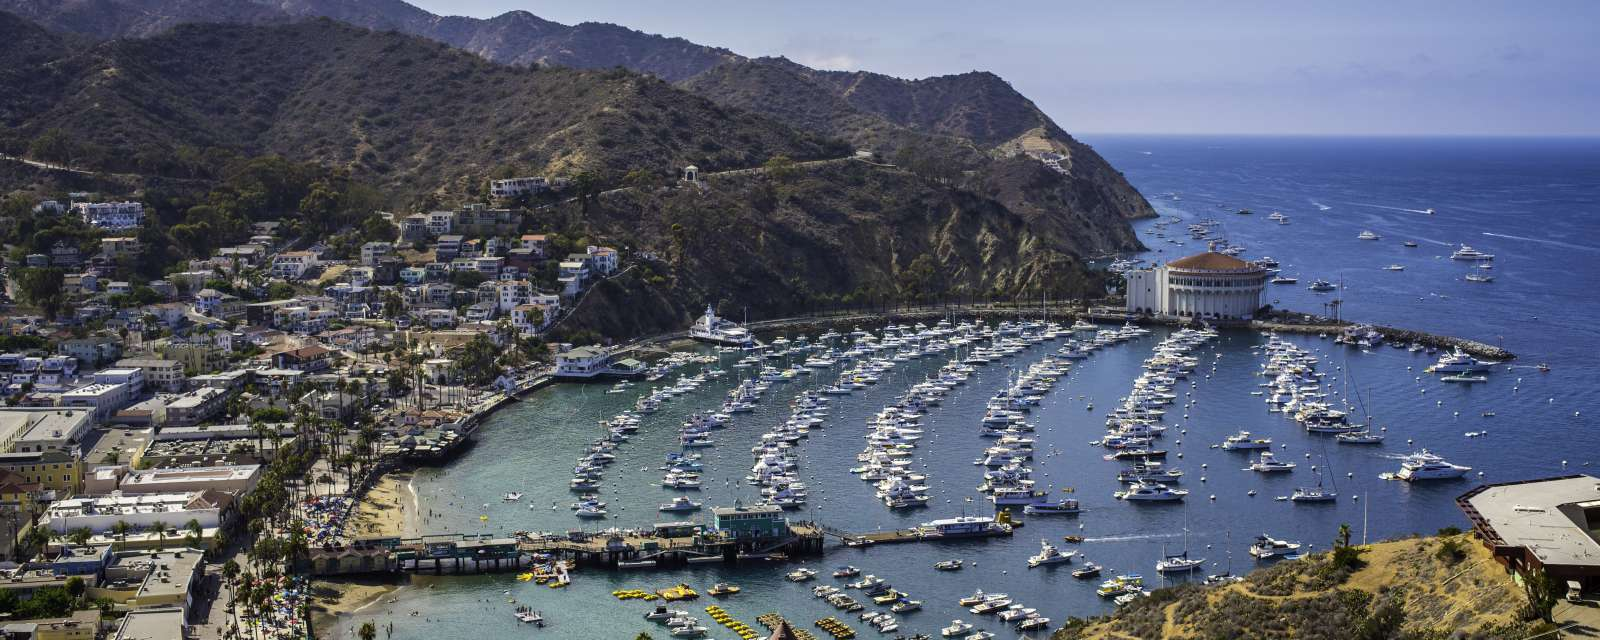 Maps of Avalon and Catalina Island | Visit Catalina Island Catalina Island Hotels Map on